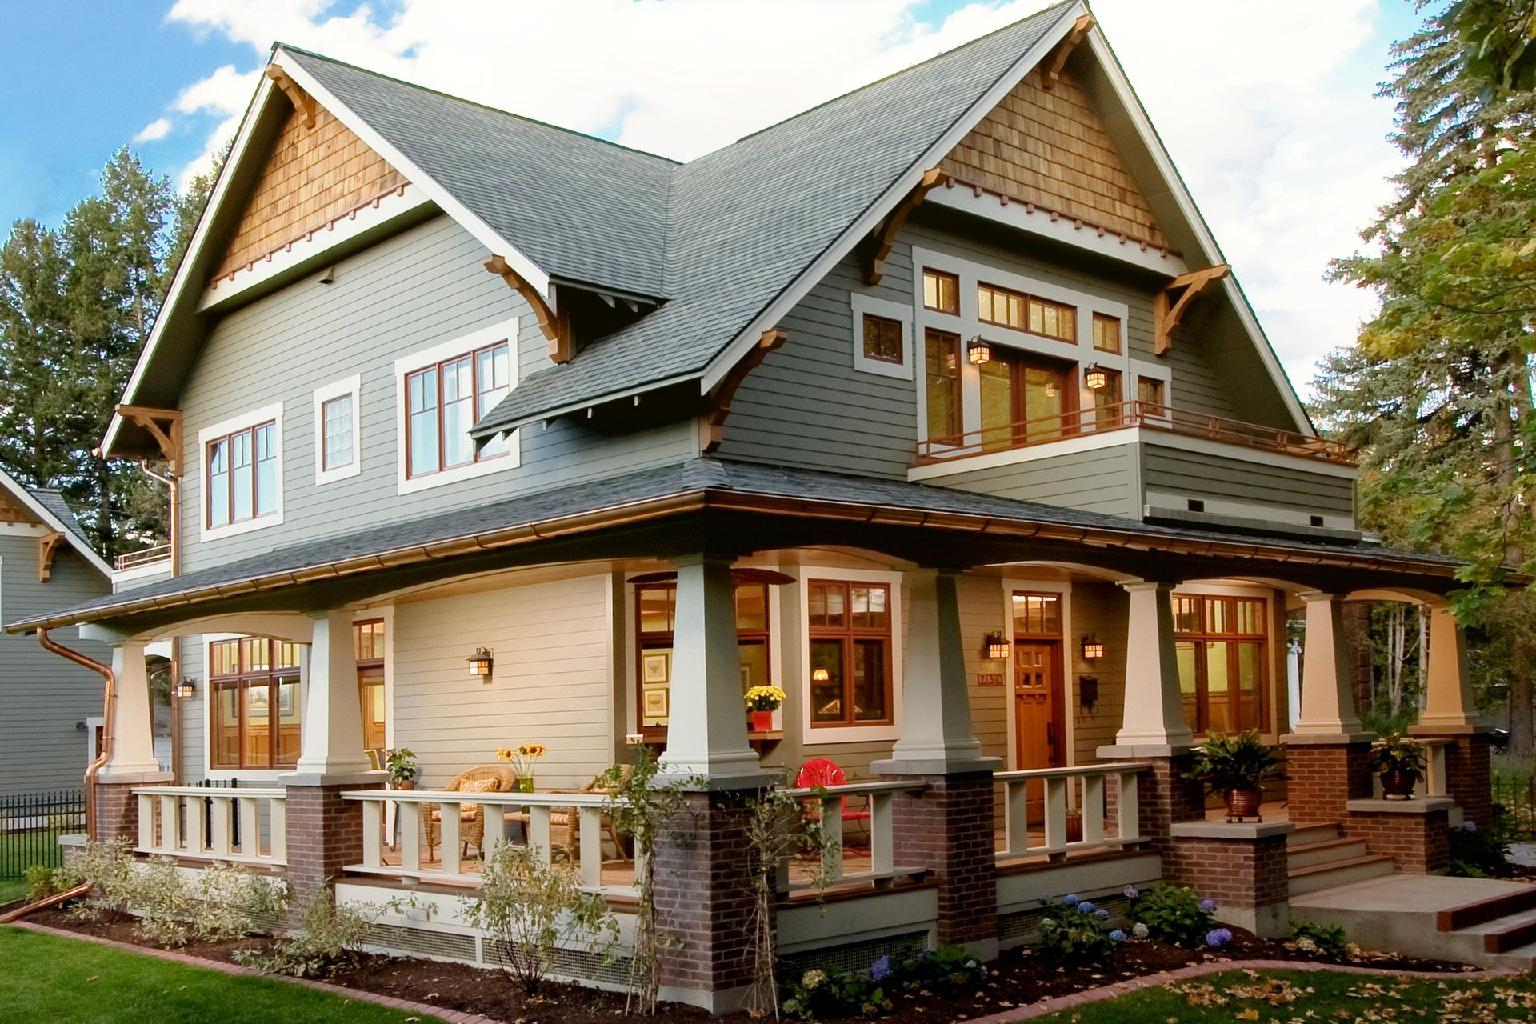 Craftsman style house history characteristics and ideas for Home style